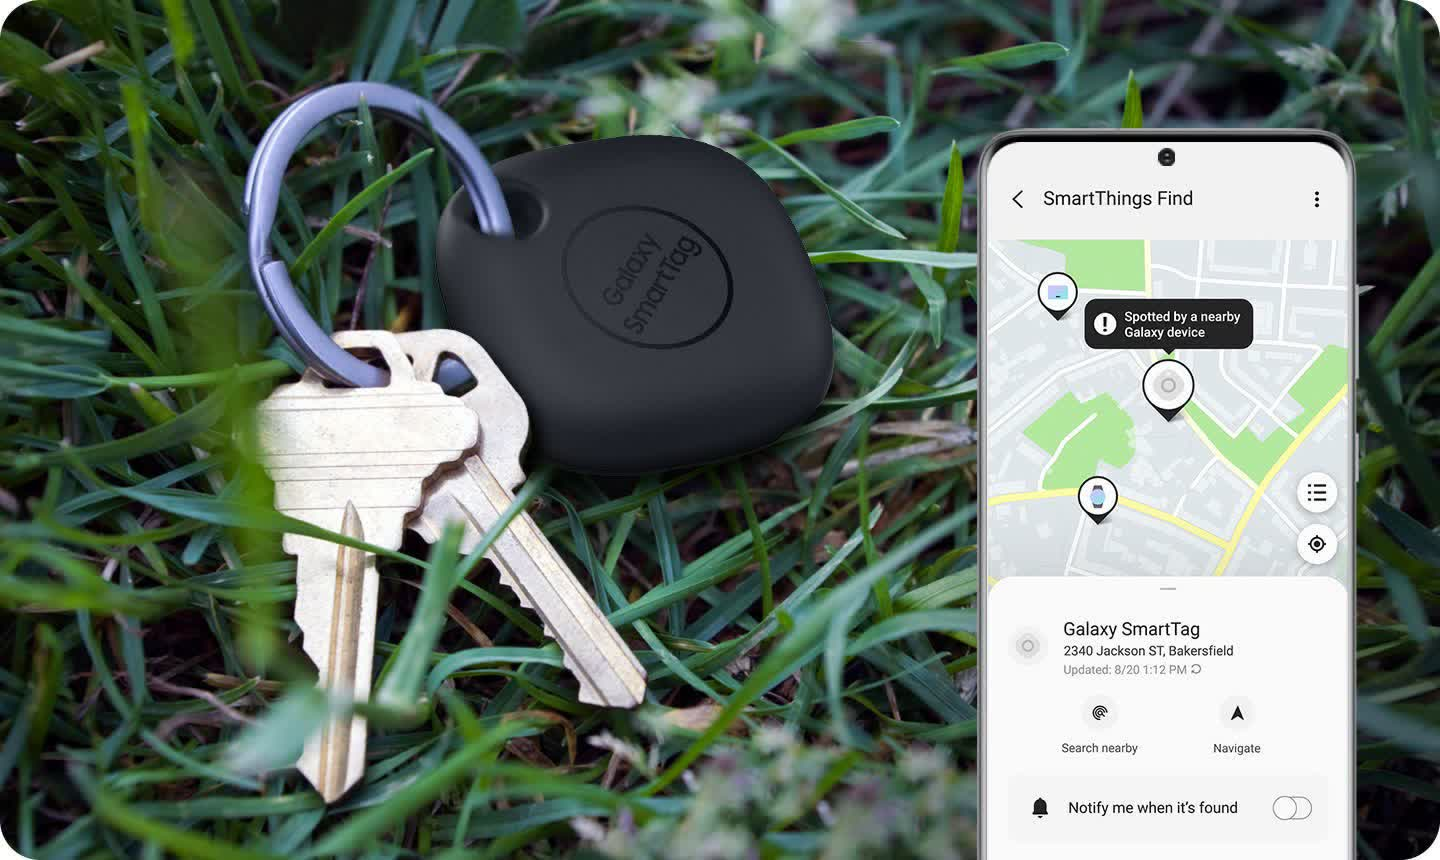 Samsung's $30 Galaxy SmartTag tracker works like Tile's but only with Galaxy phones